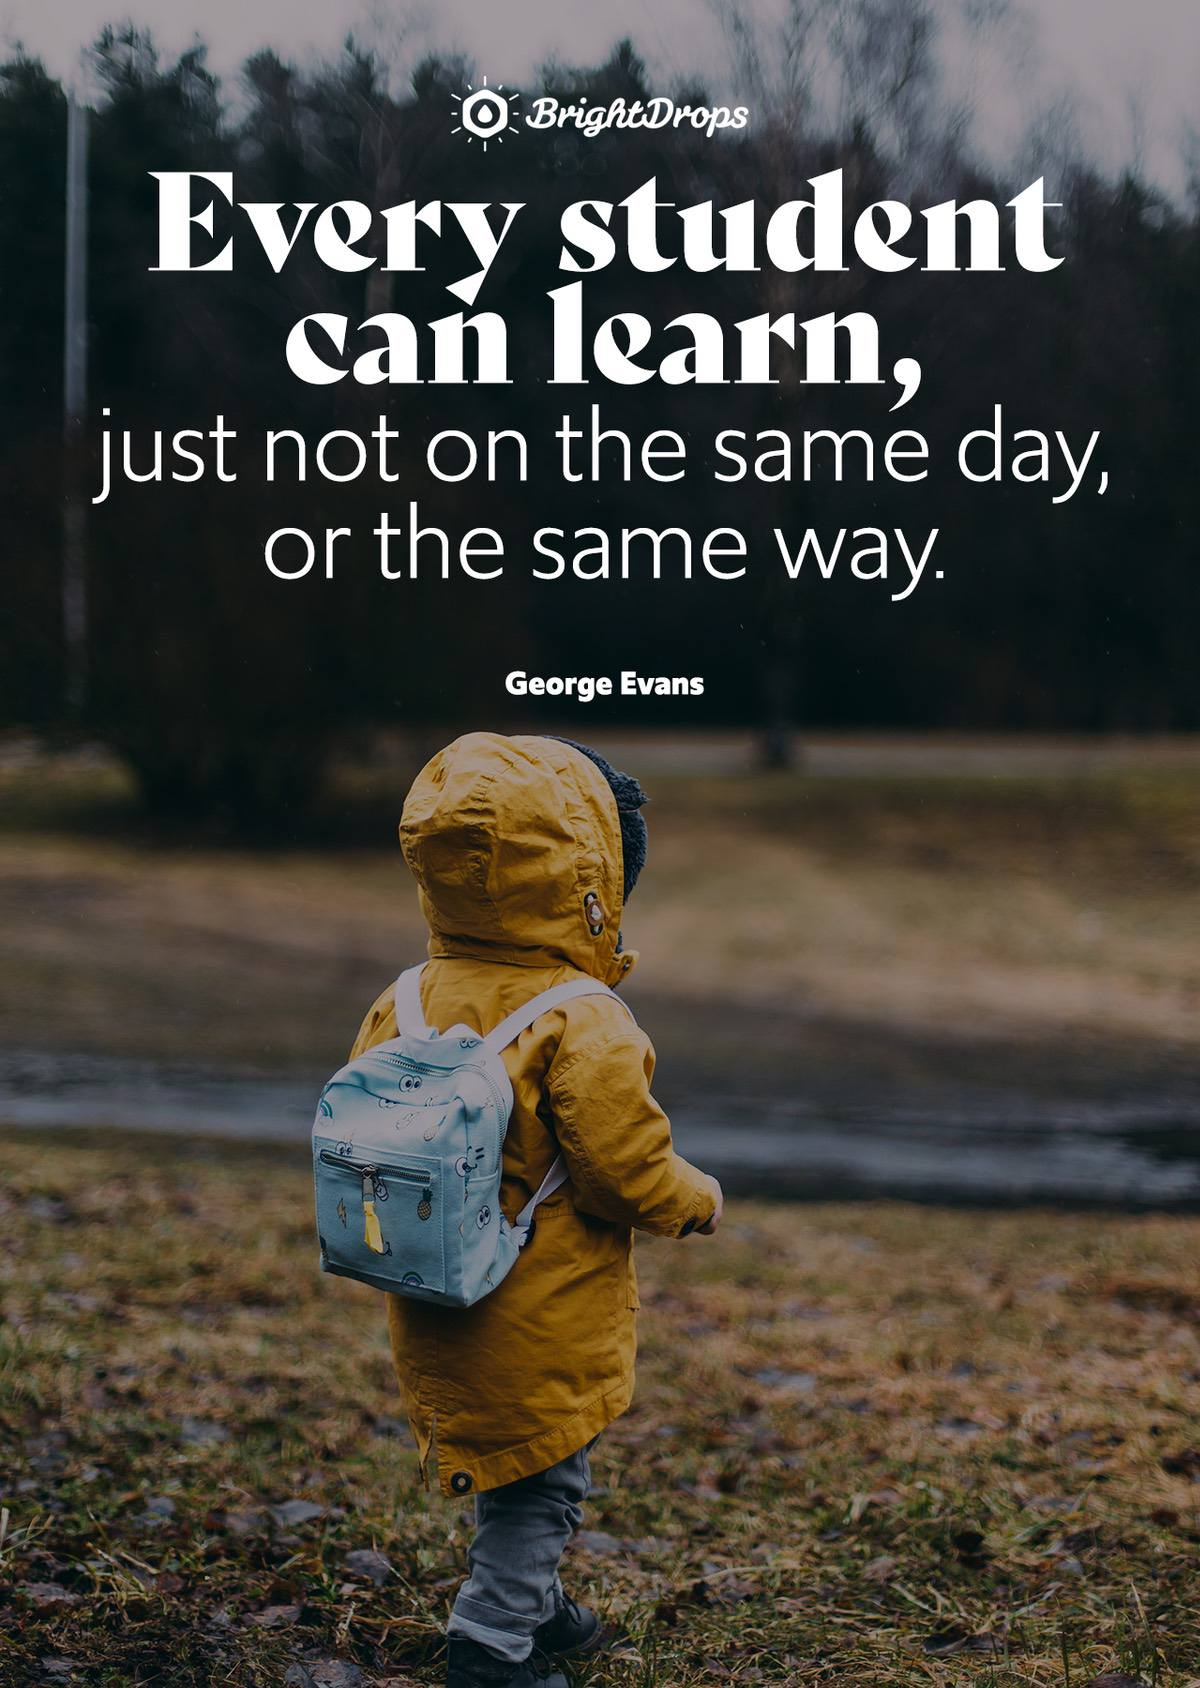 Every student can learn, just not on the same day, or the same way. - George Evans